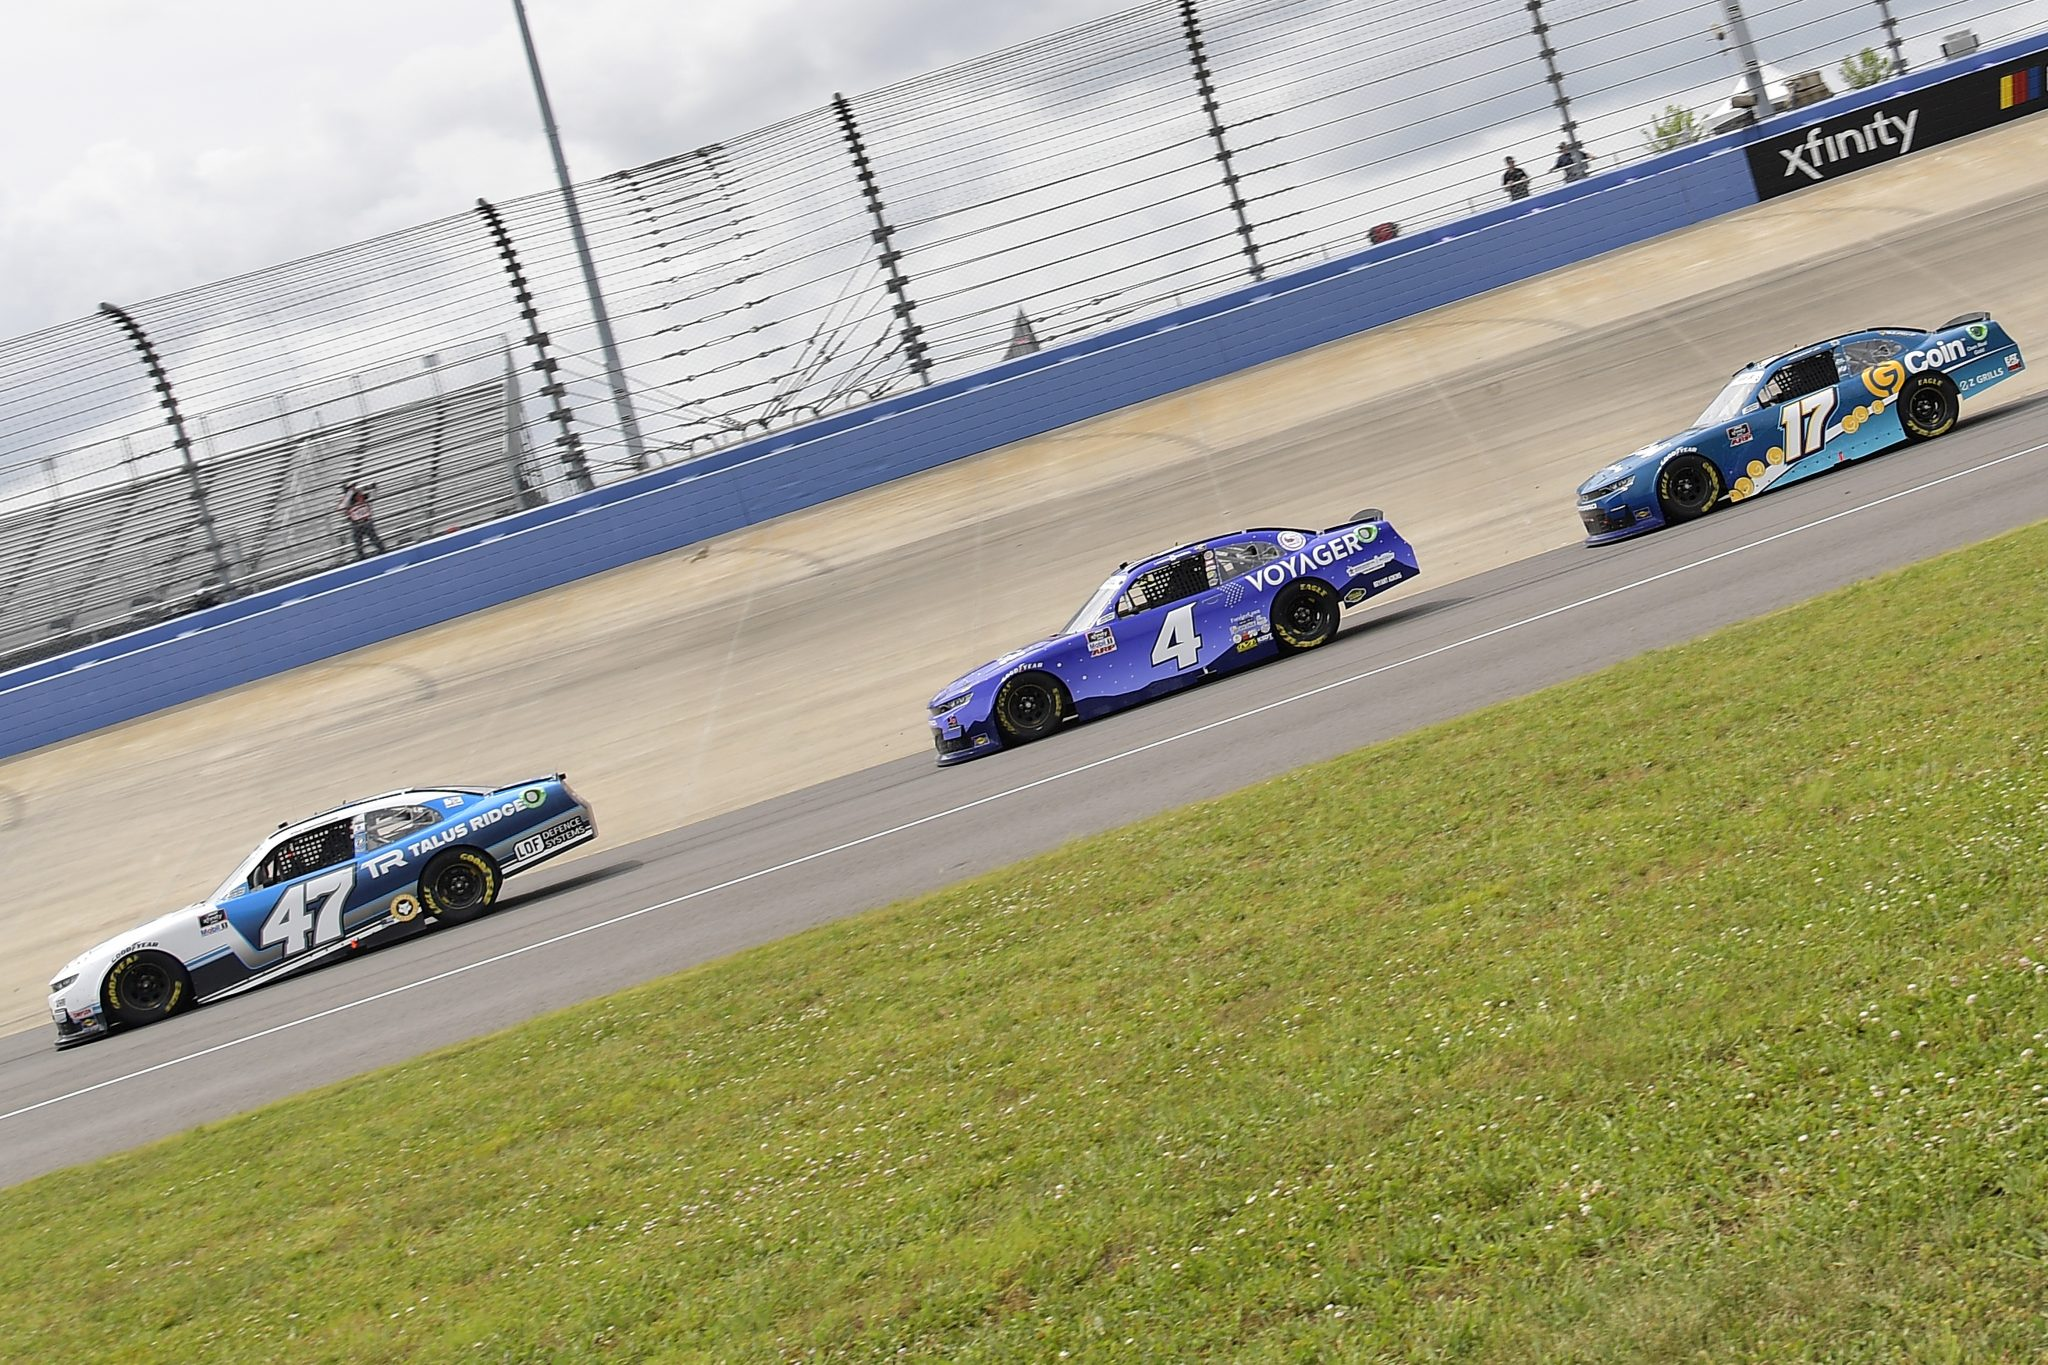 LEBANON, TENNESSEE - JUNE 19: Kyle Weatherman, driver of the #47 Replenish Foundation Chevrolet, Landon Cassill, driver of the #4 Voyager Chevrolet, and Joe Graf Jr., driver of the #17 G Coin Chevrolet, race during the NASCAR Xfinity Series Tennessee Lottery 250 at Nashville Superspeedway on June 19, 2021 in Lebanon, Tennessee. (Photo by Logan Riely/Getty Images)   Getty Images